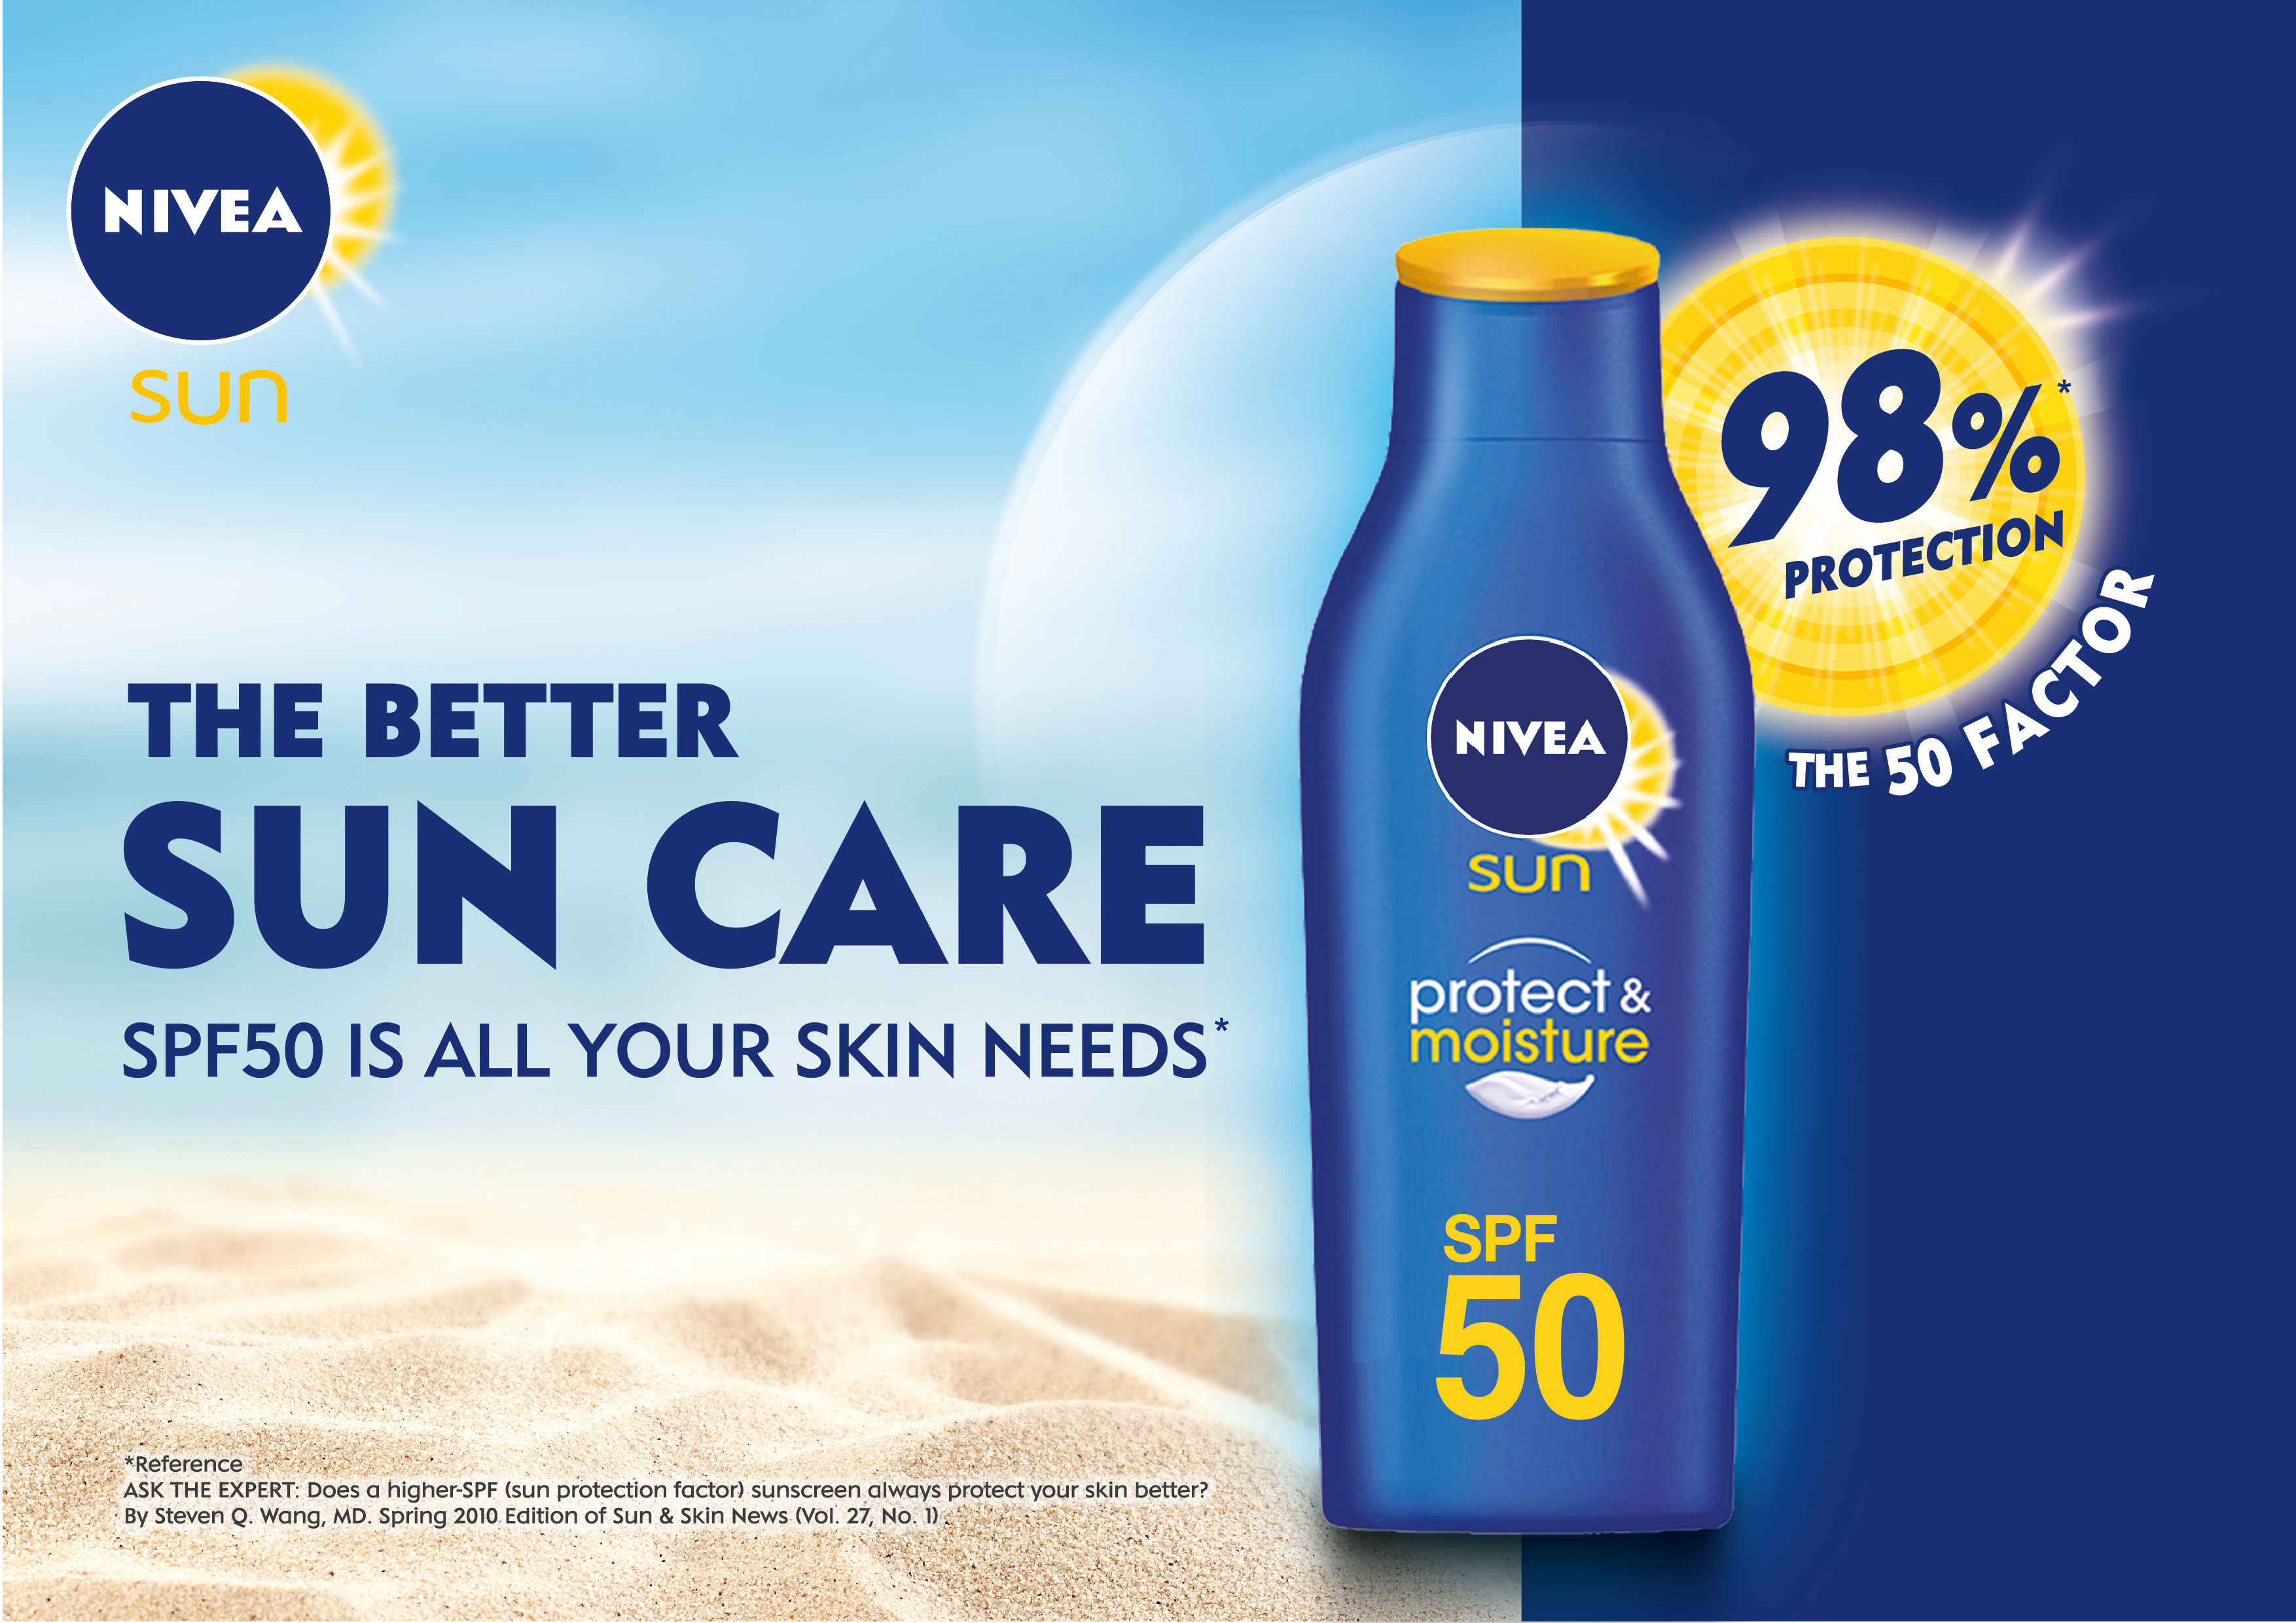 Image from NIVEA